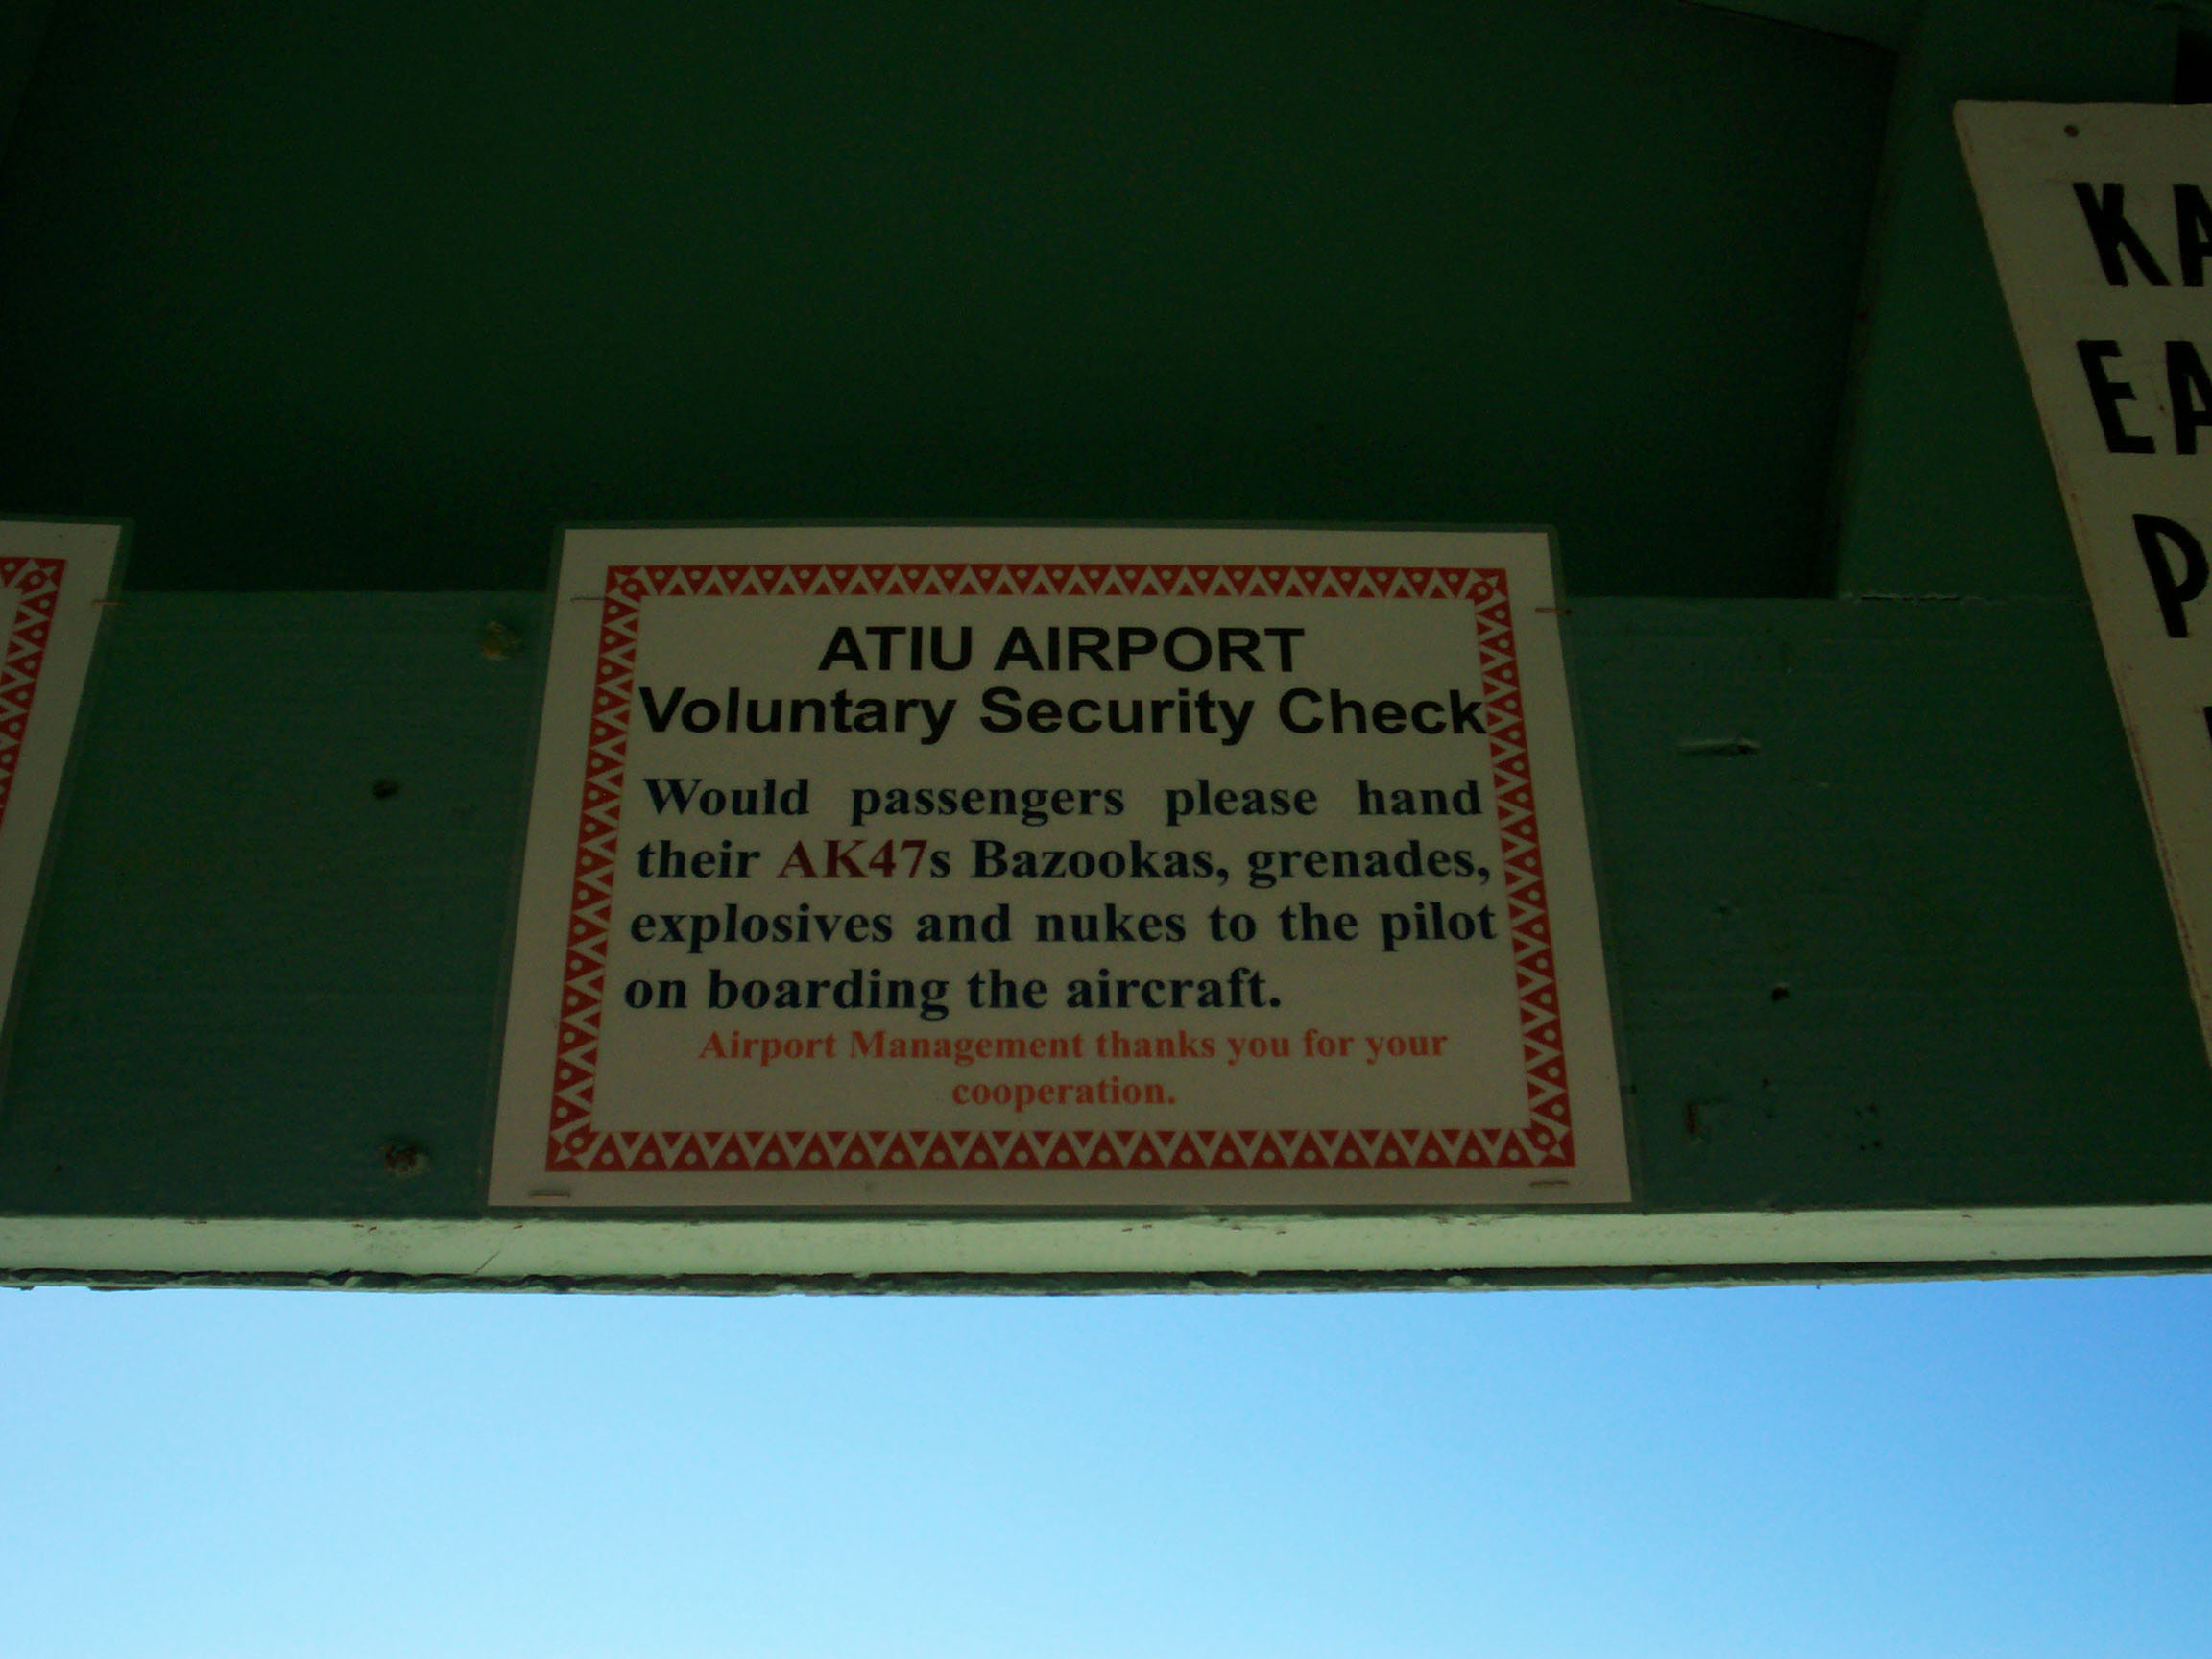 Atiu Airport Warning